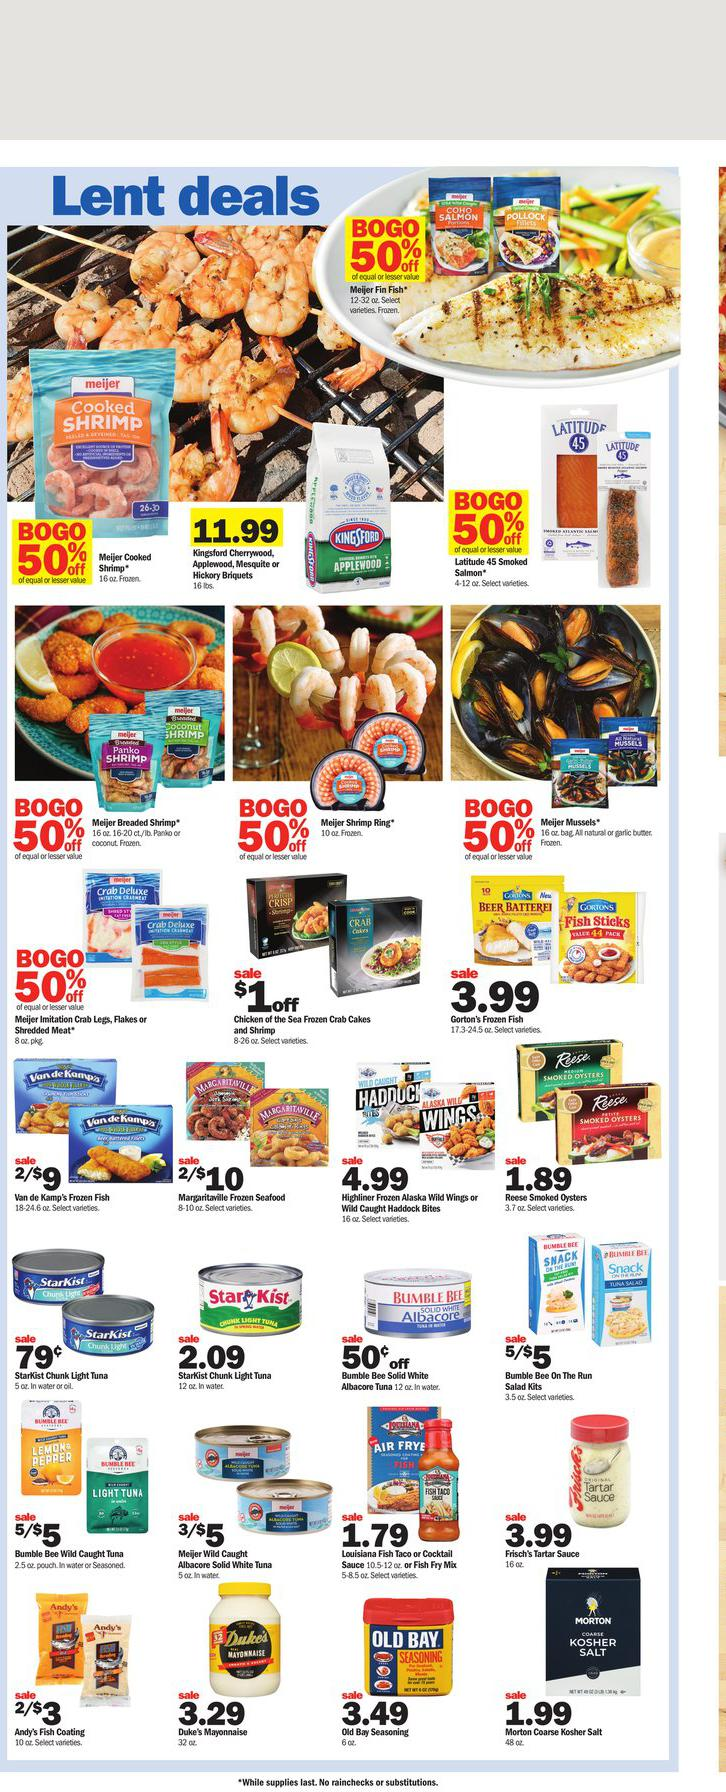 21.02.2021 Meijer ad 8. page